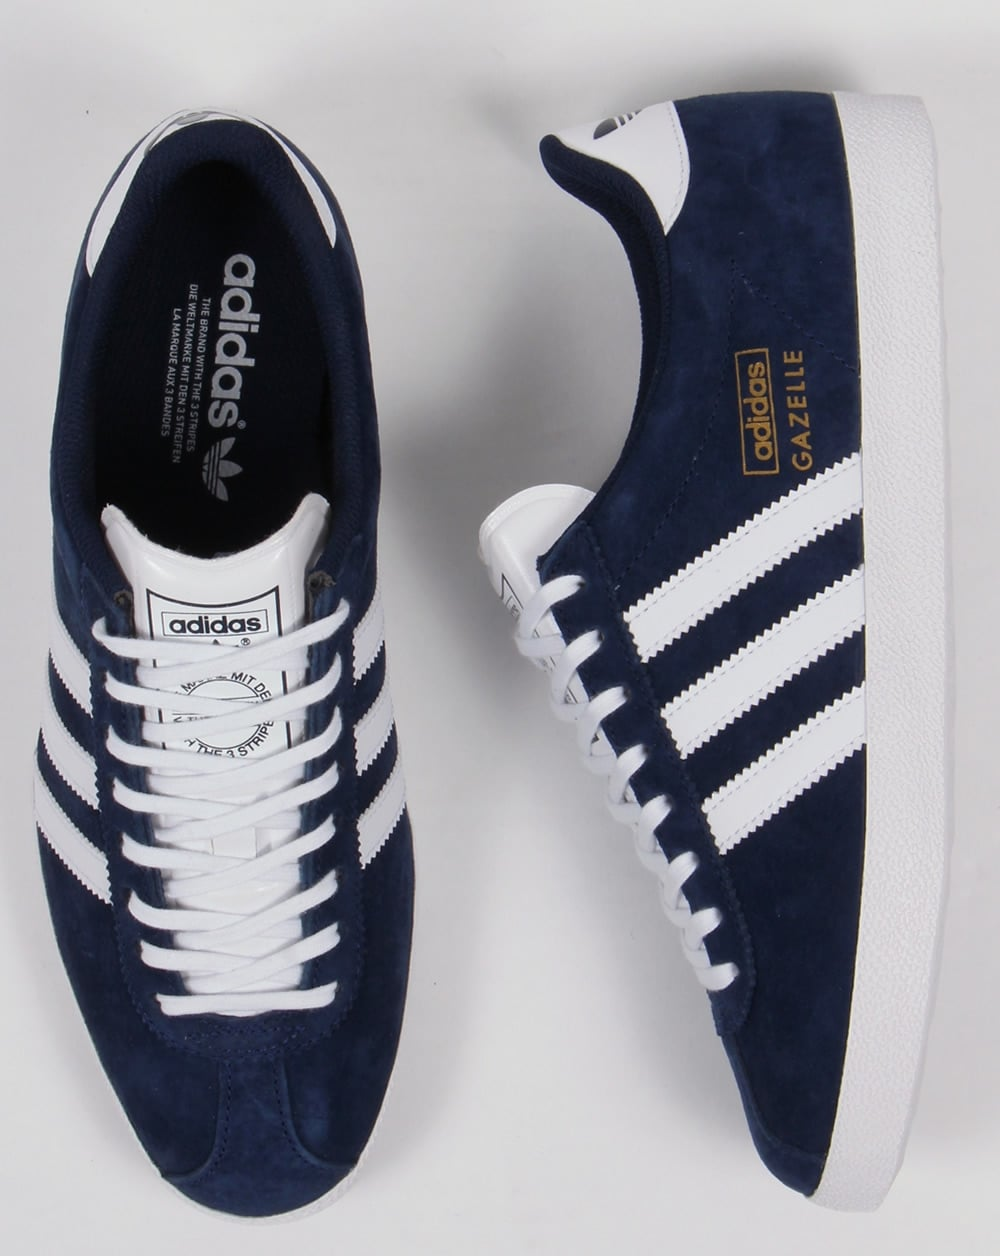 half off f3f33 8369b adidas gazelle navy adidas shoes men superstar blue